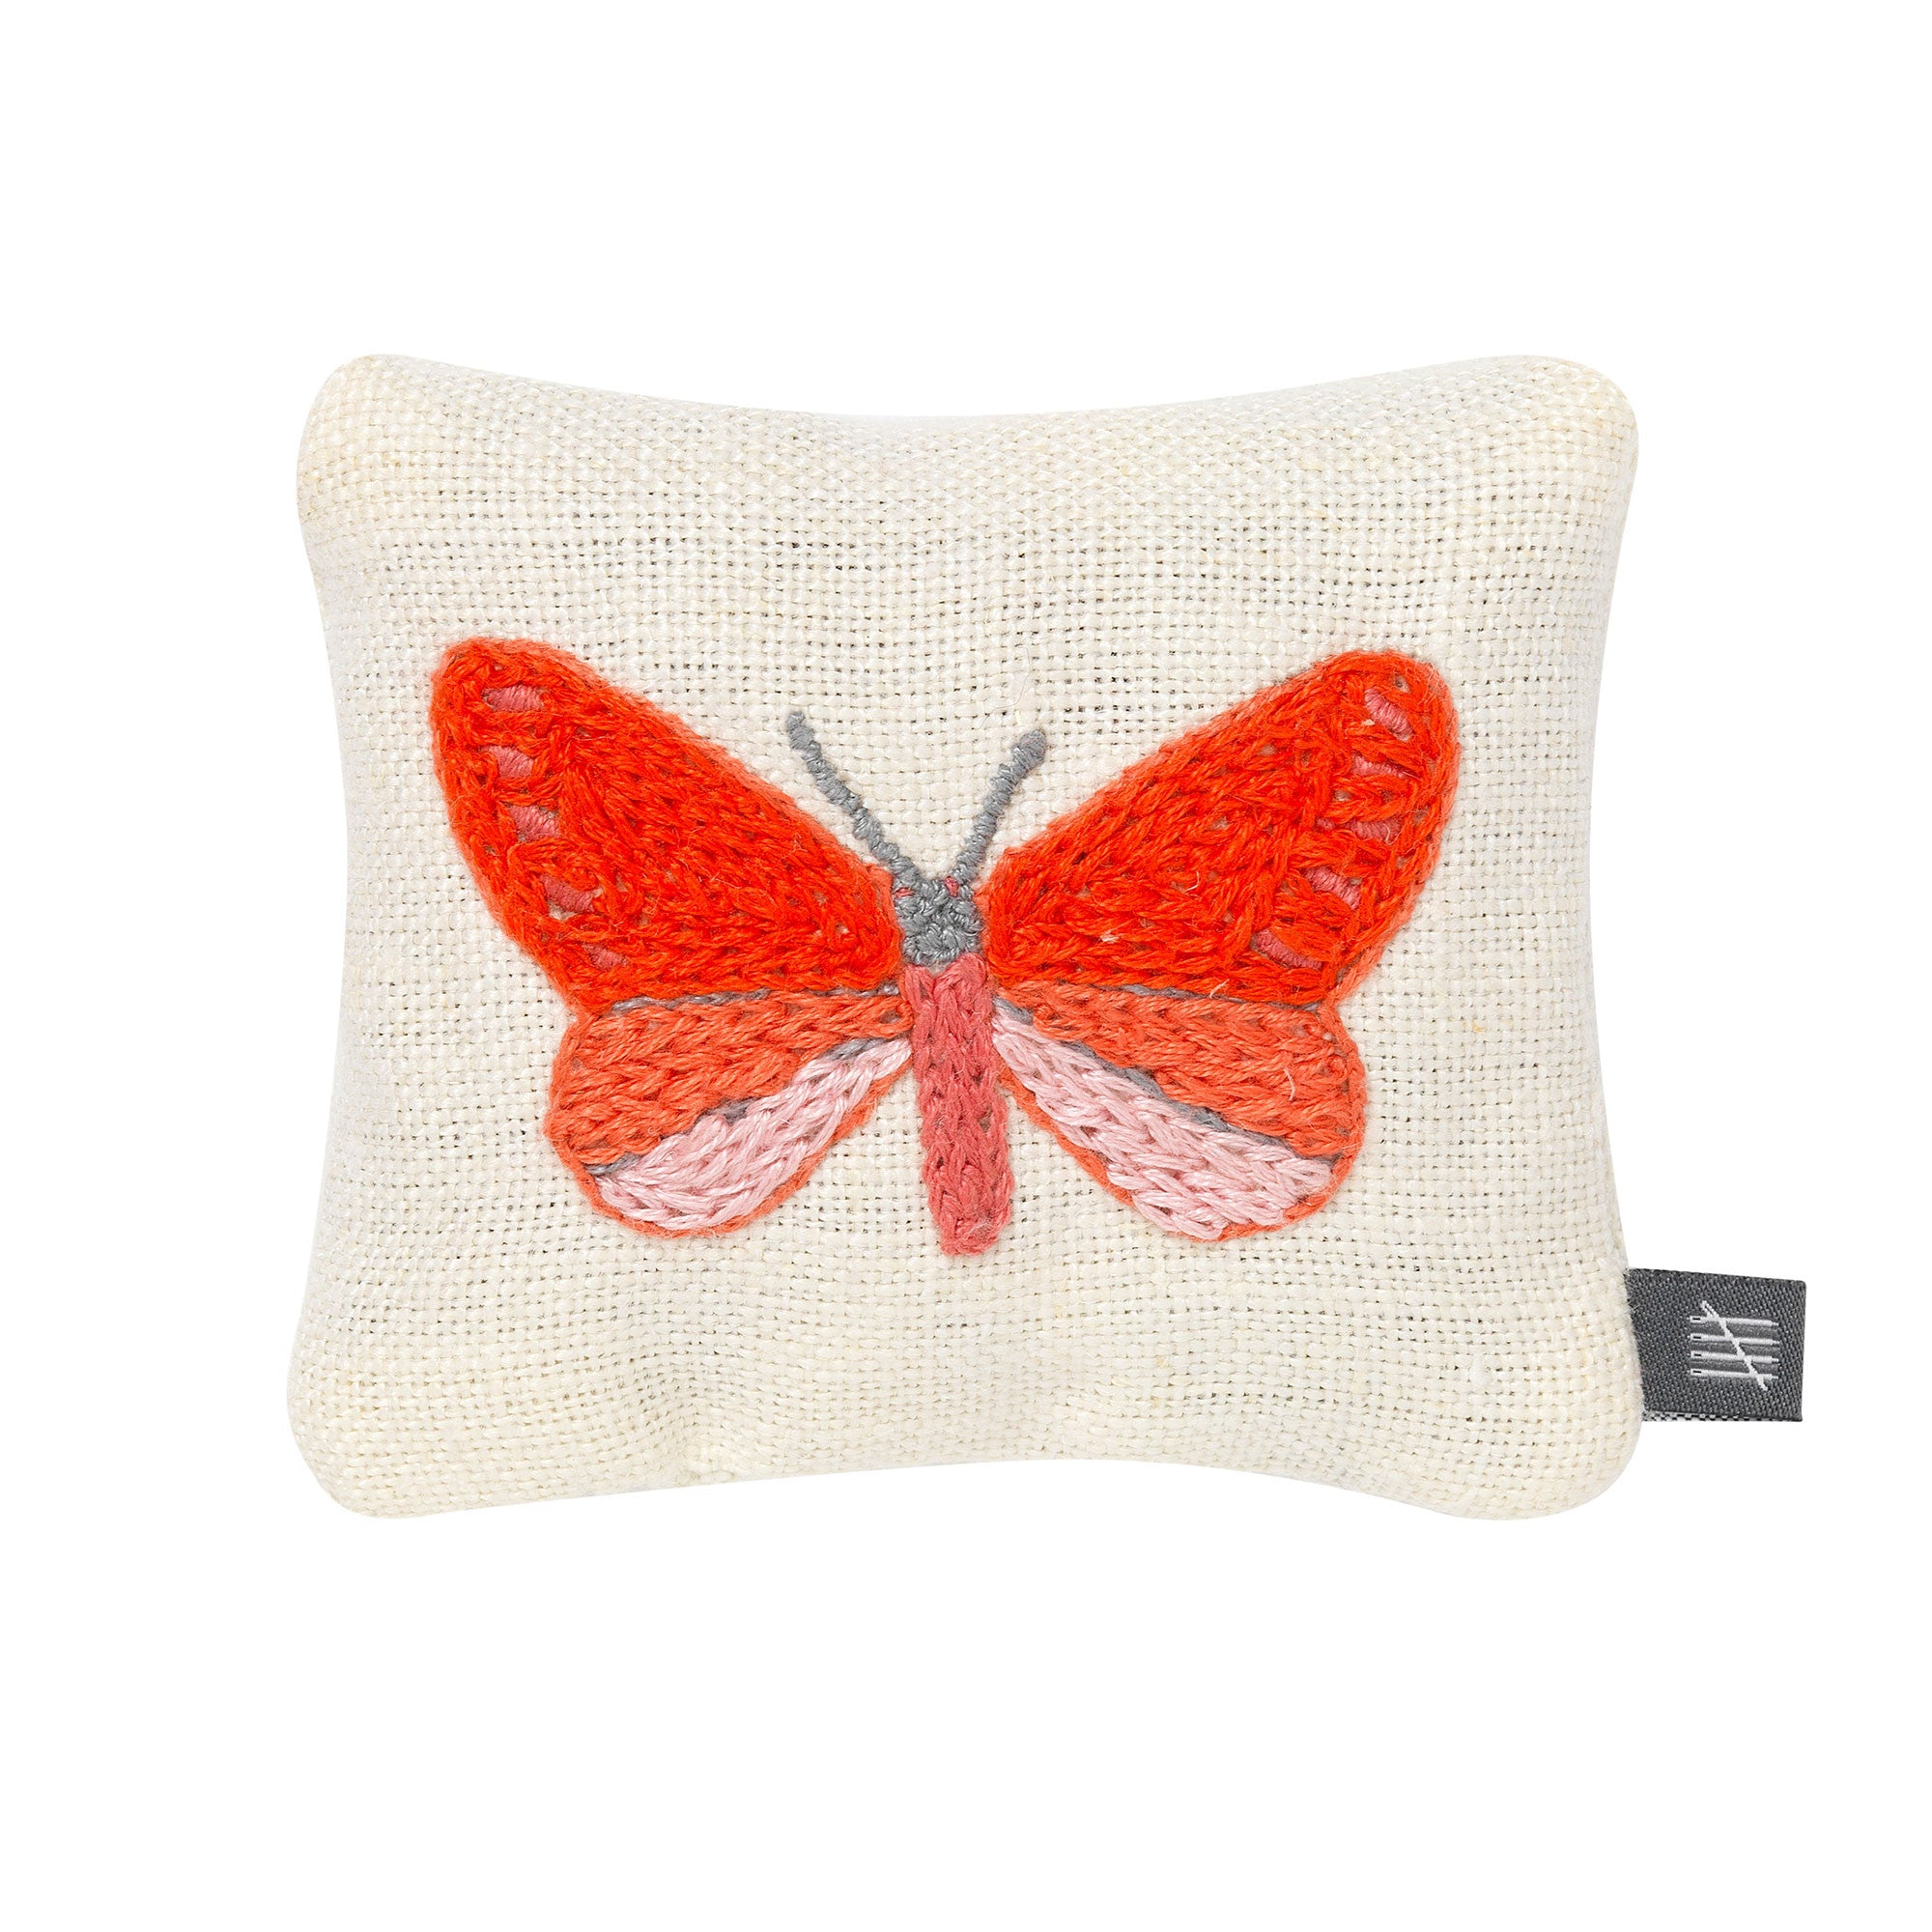 Lavender Bag - Butterflies - Pink on Cream Linen